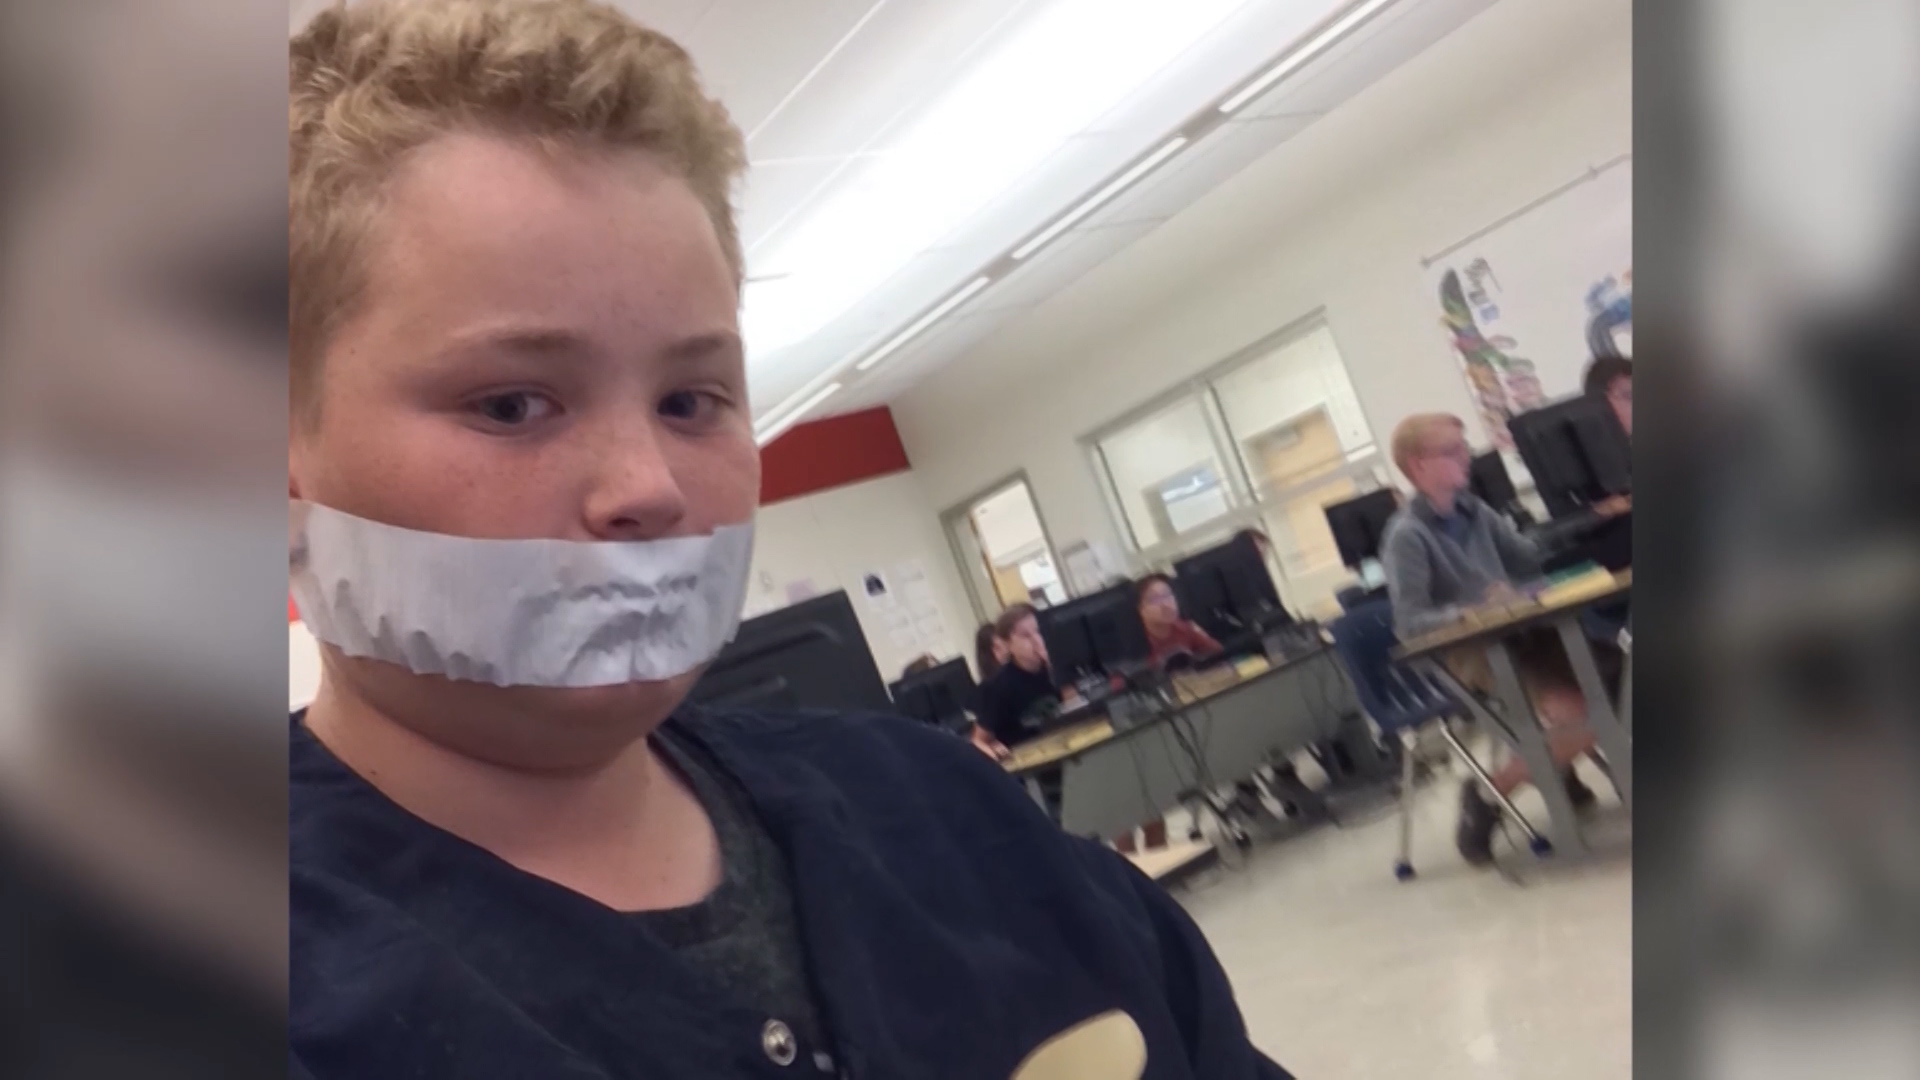 Students told to place duct tape over their mouths for speaking during class